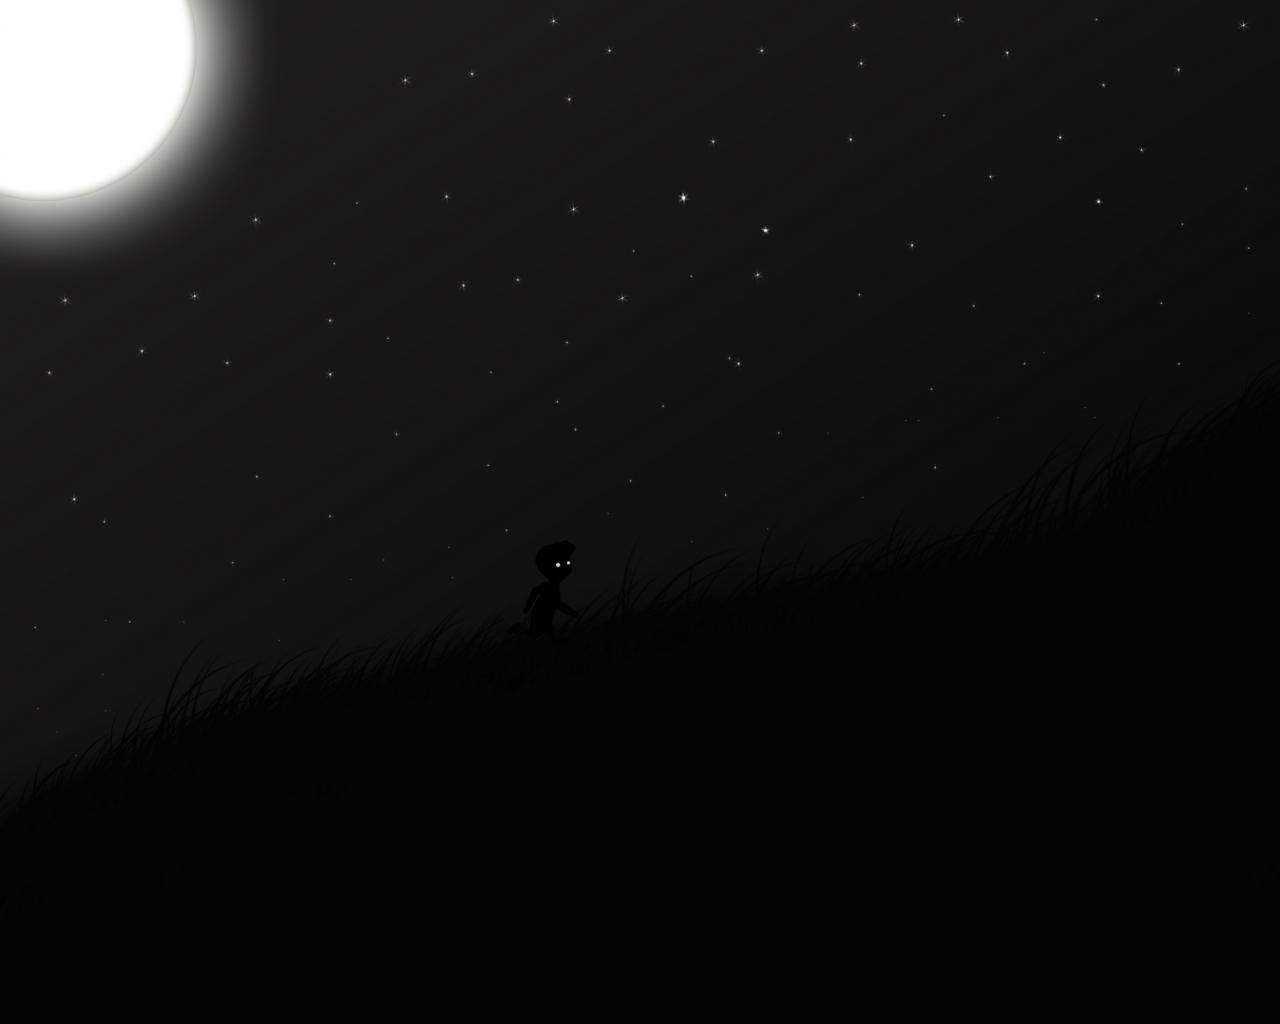 Limbo Wallpapers Hd For Desktop Backgrounds